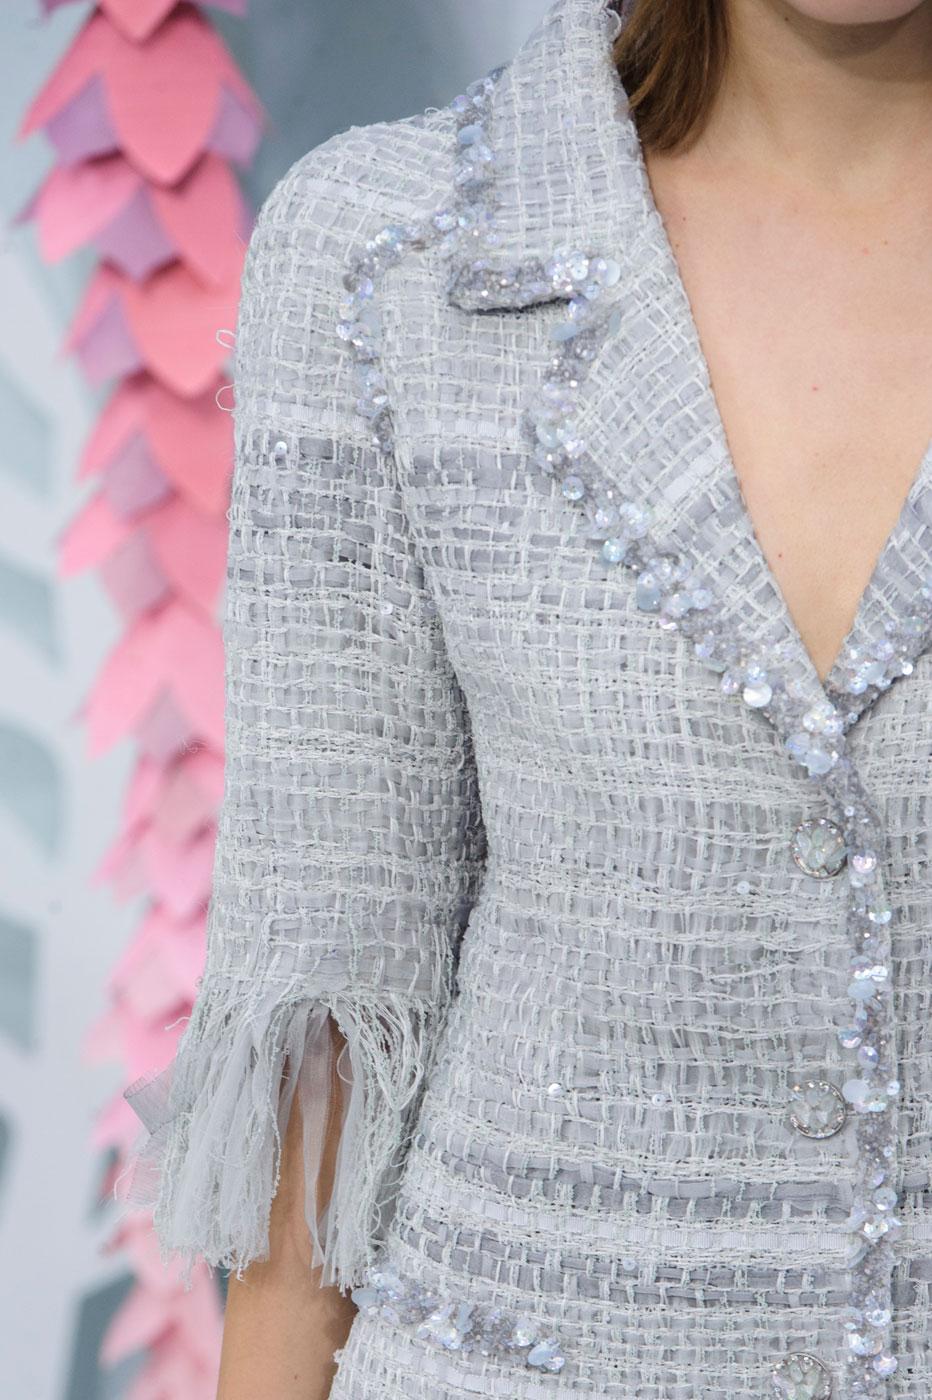 Chanel-fashion-runway-show-close-ups-haute-couture-paris-spring-summer-2015-the-impression-051